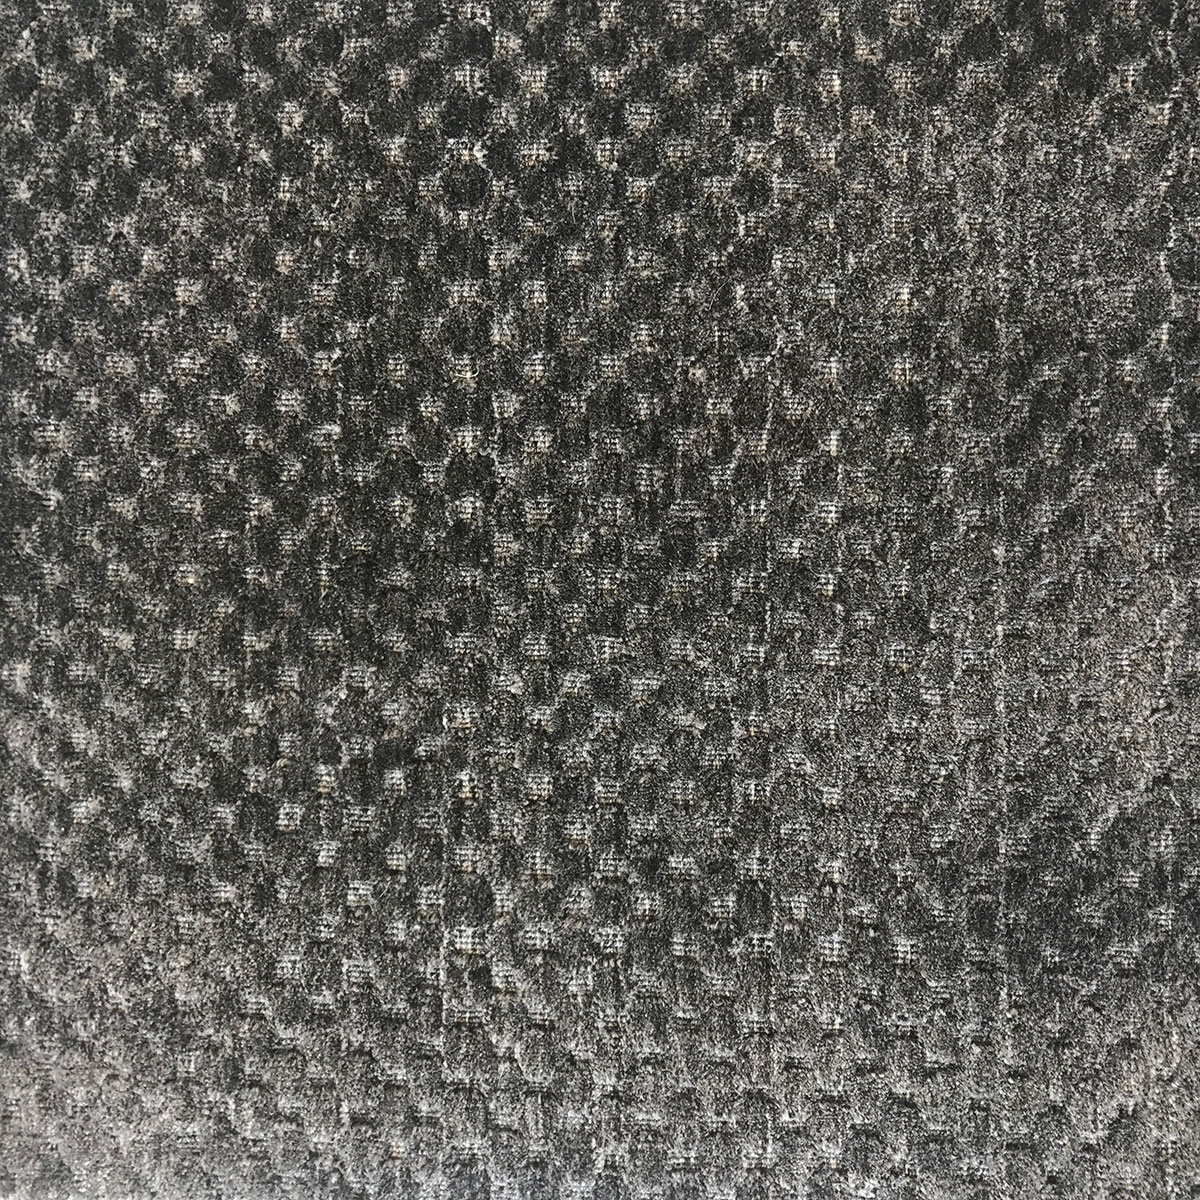 octa-dark-grey-custom-area-rug_thumb.jpg